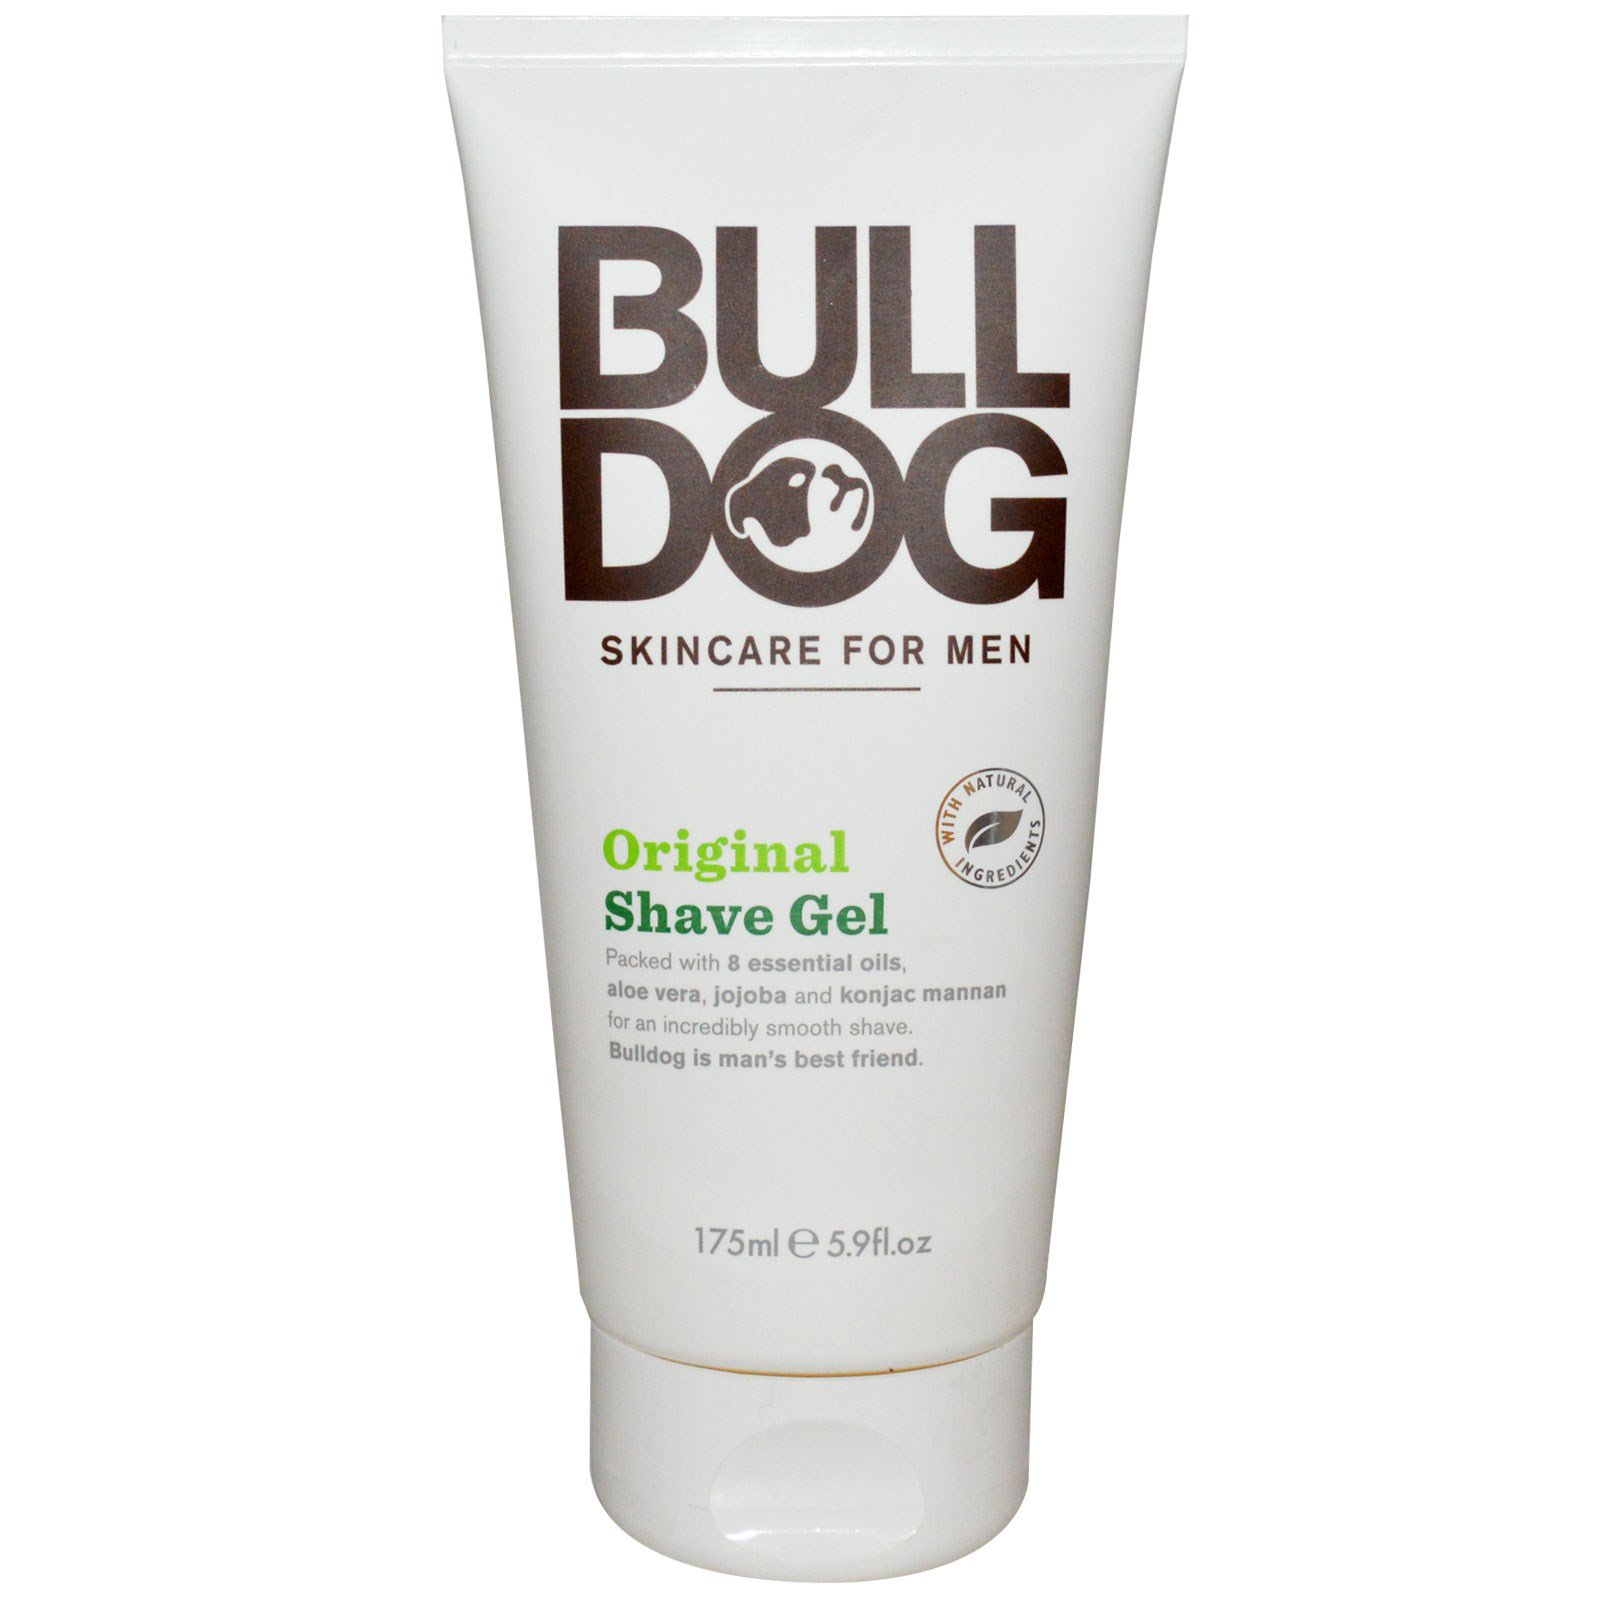 Brand New skincare For Men Shave Gel/ Aftershave Balm Bundle Bulldog